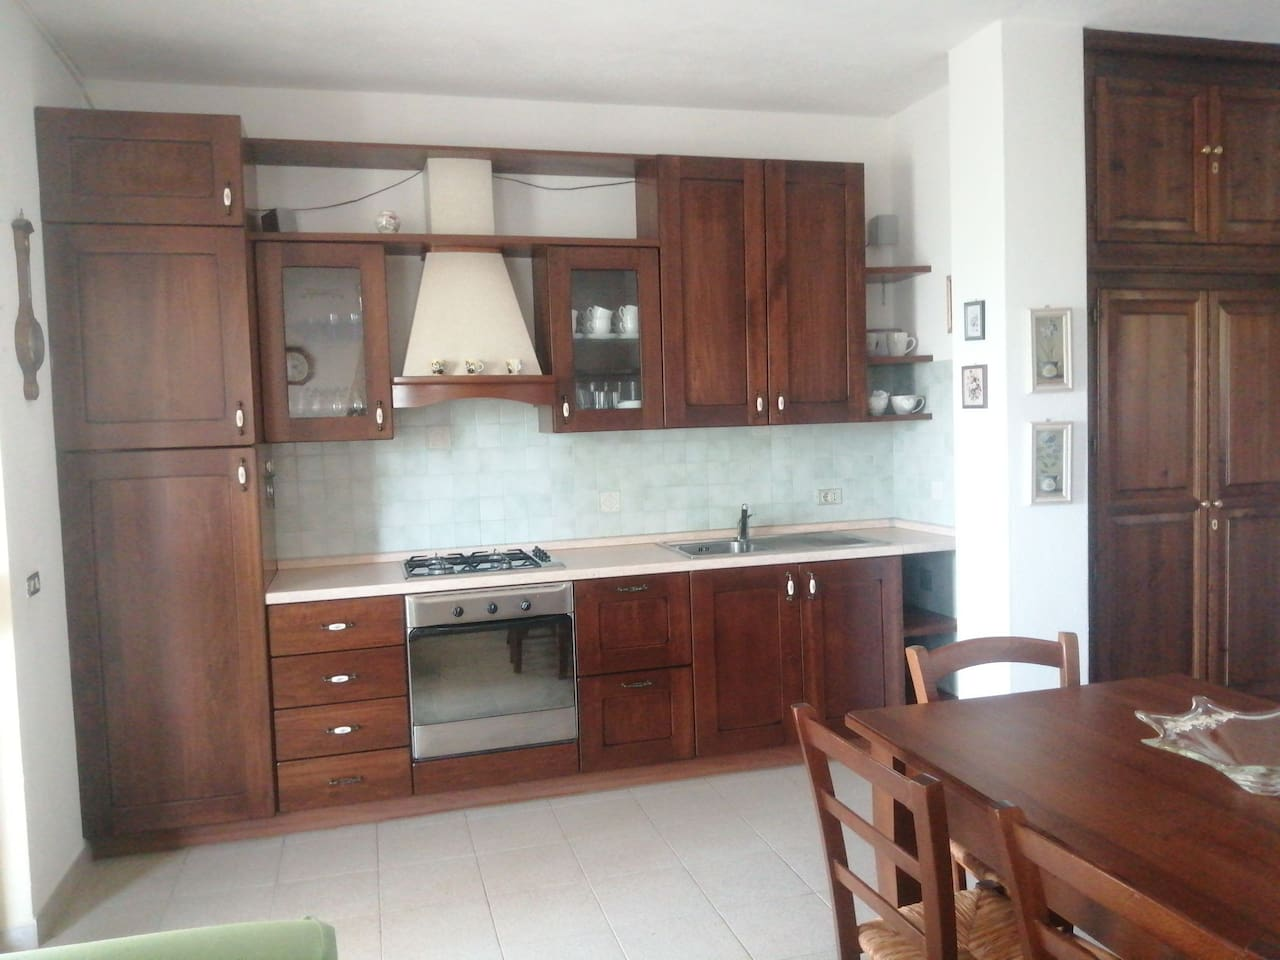 Cucina 4 X 4 appartamento titina - apartments for rent in jerzu